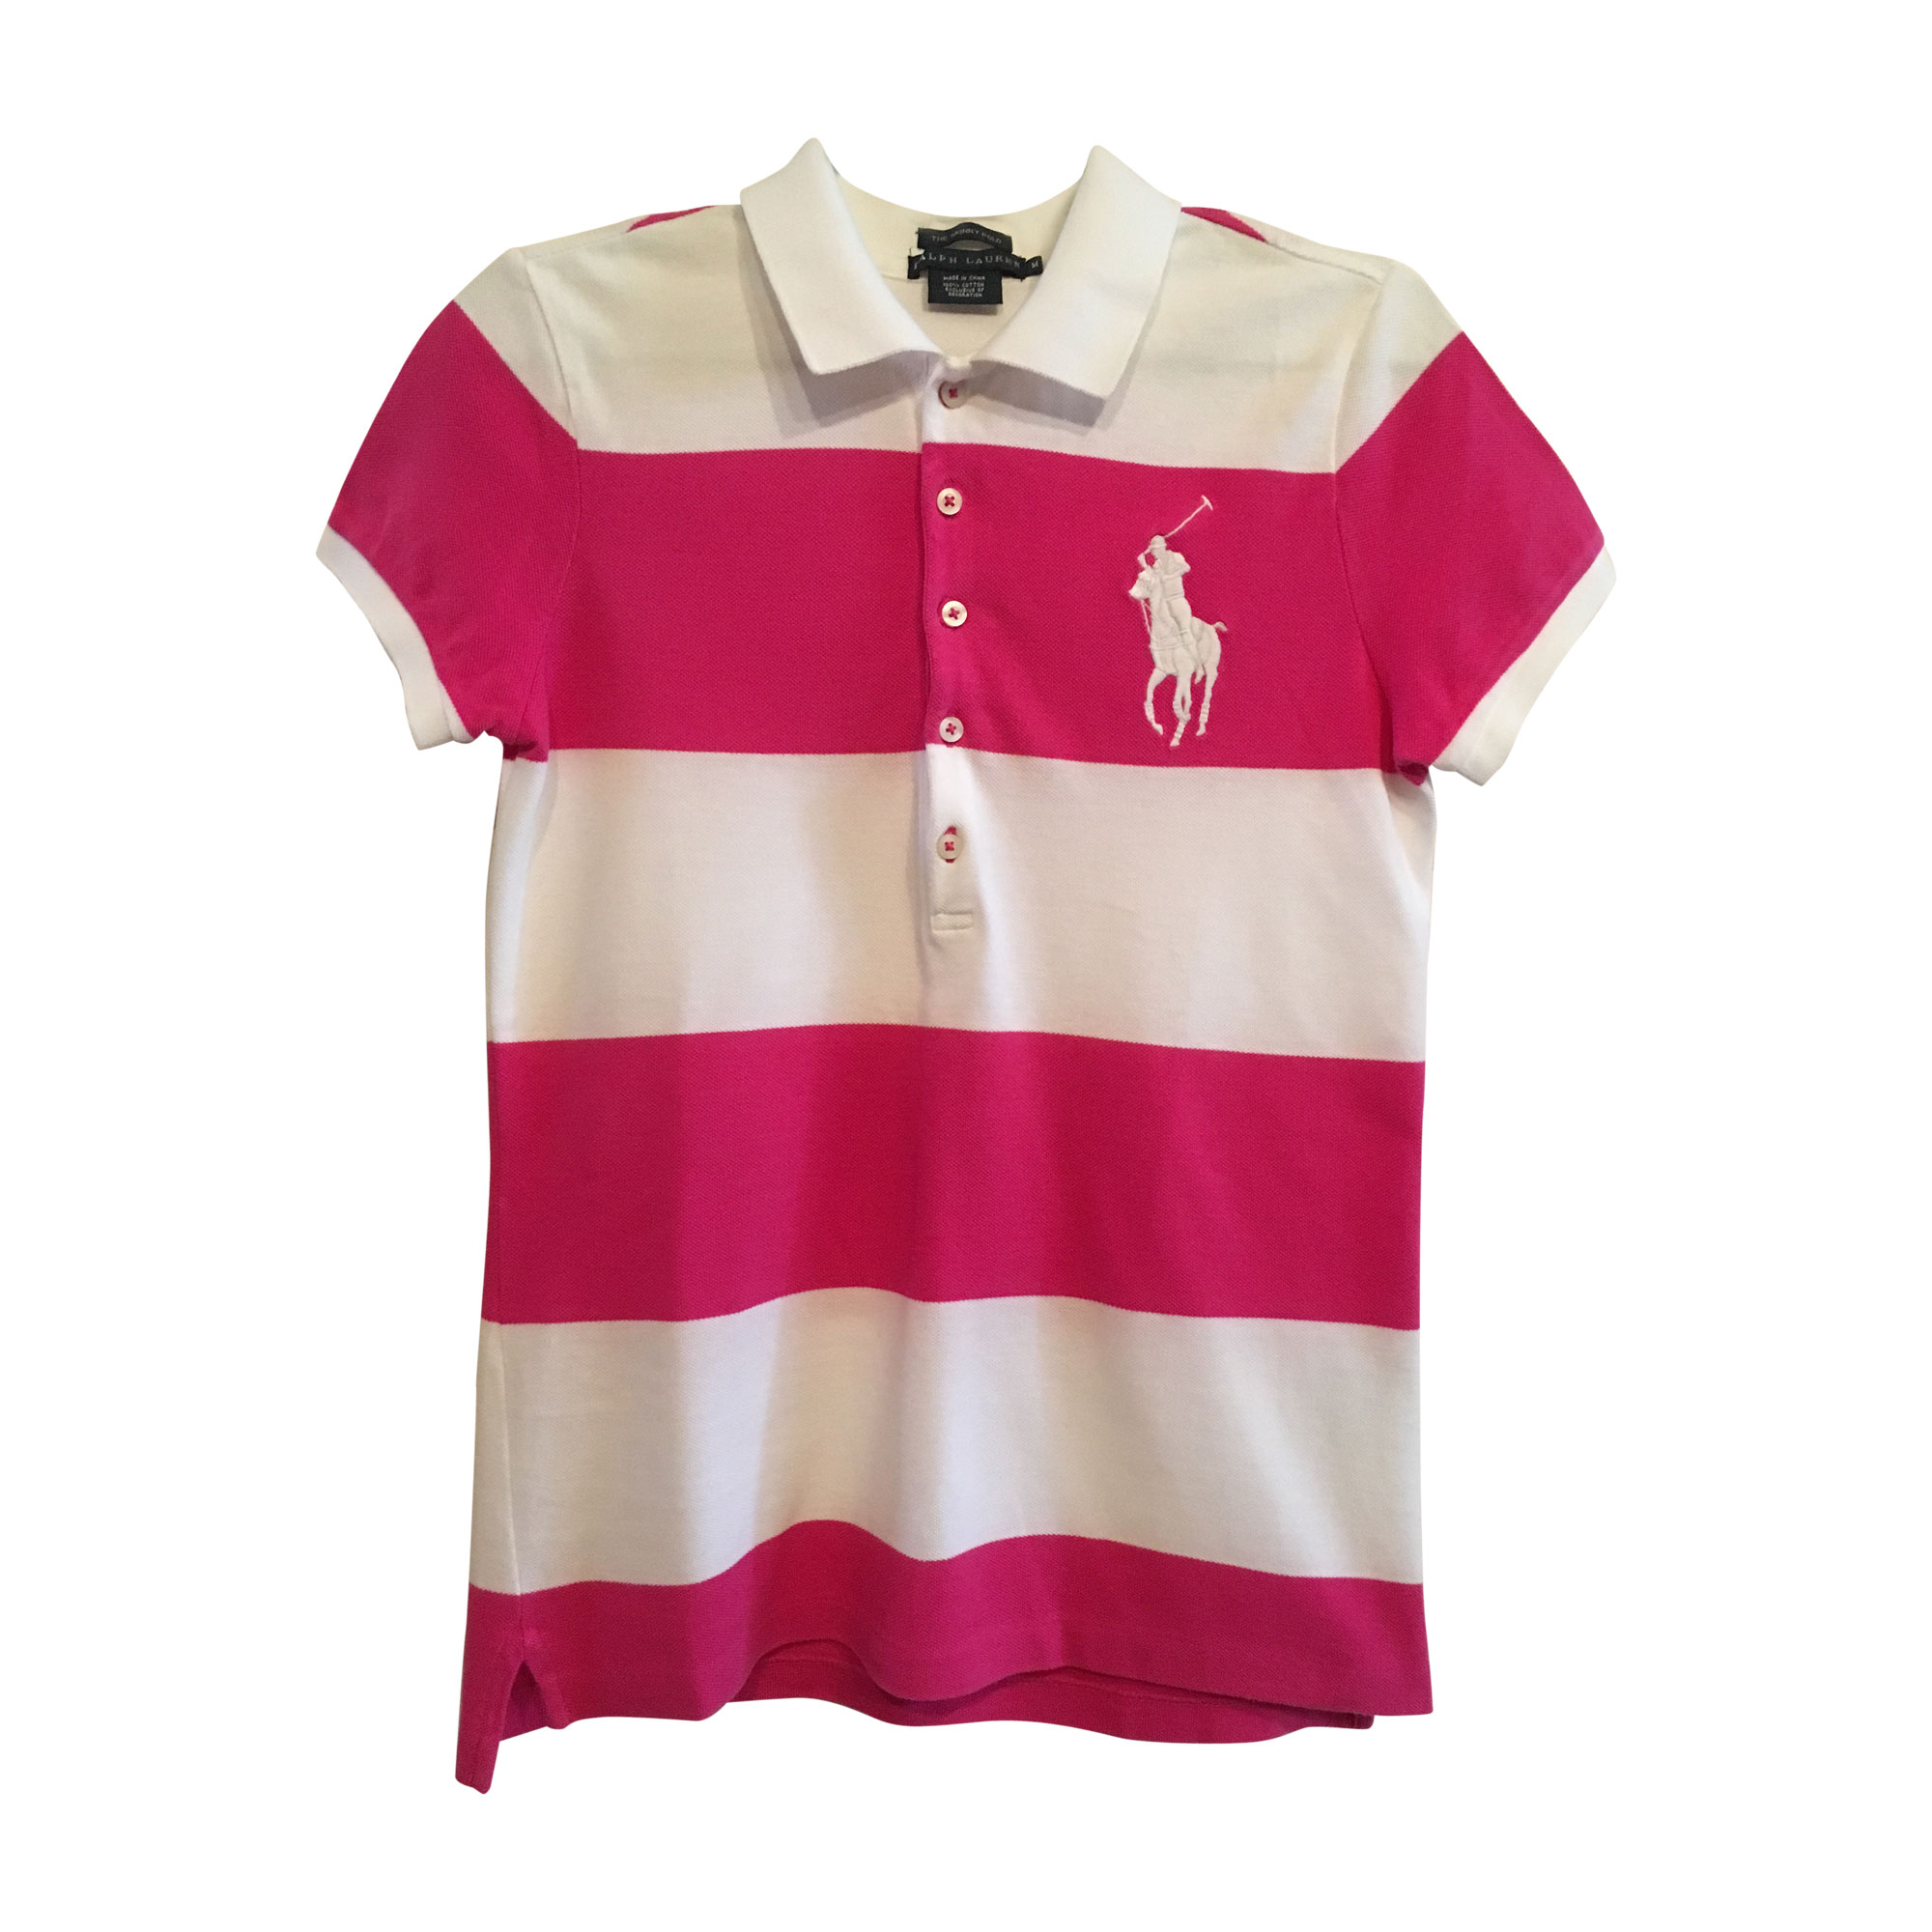 Taille Homme Rouge M Polo Ralph T2 38 Lauren LcAjS543Rq